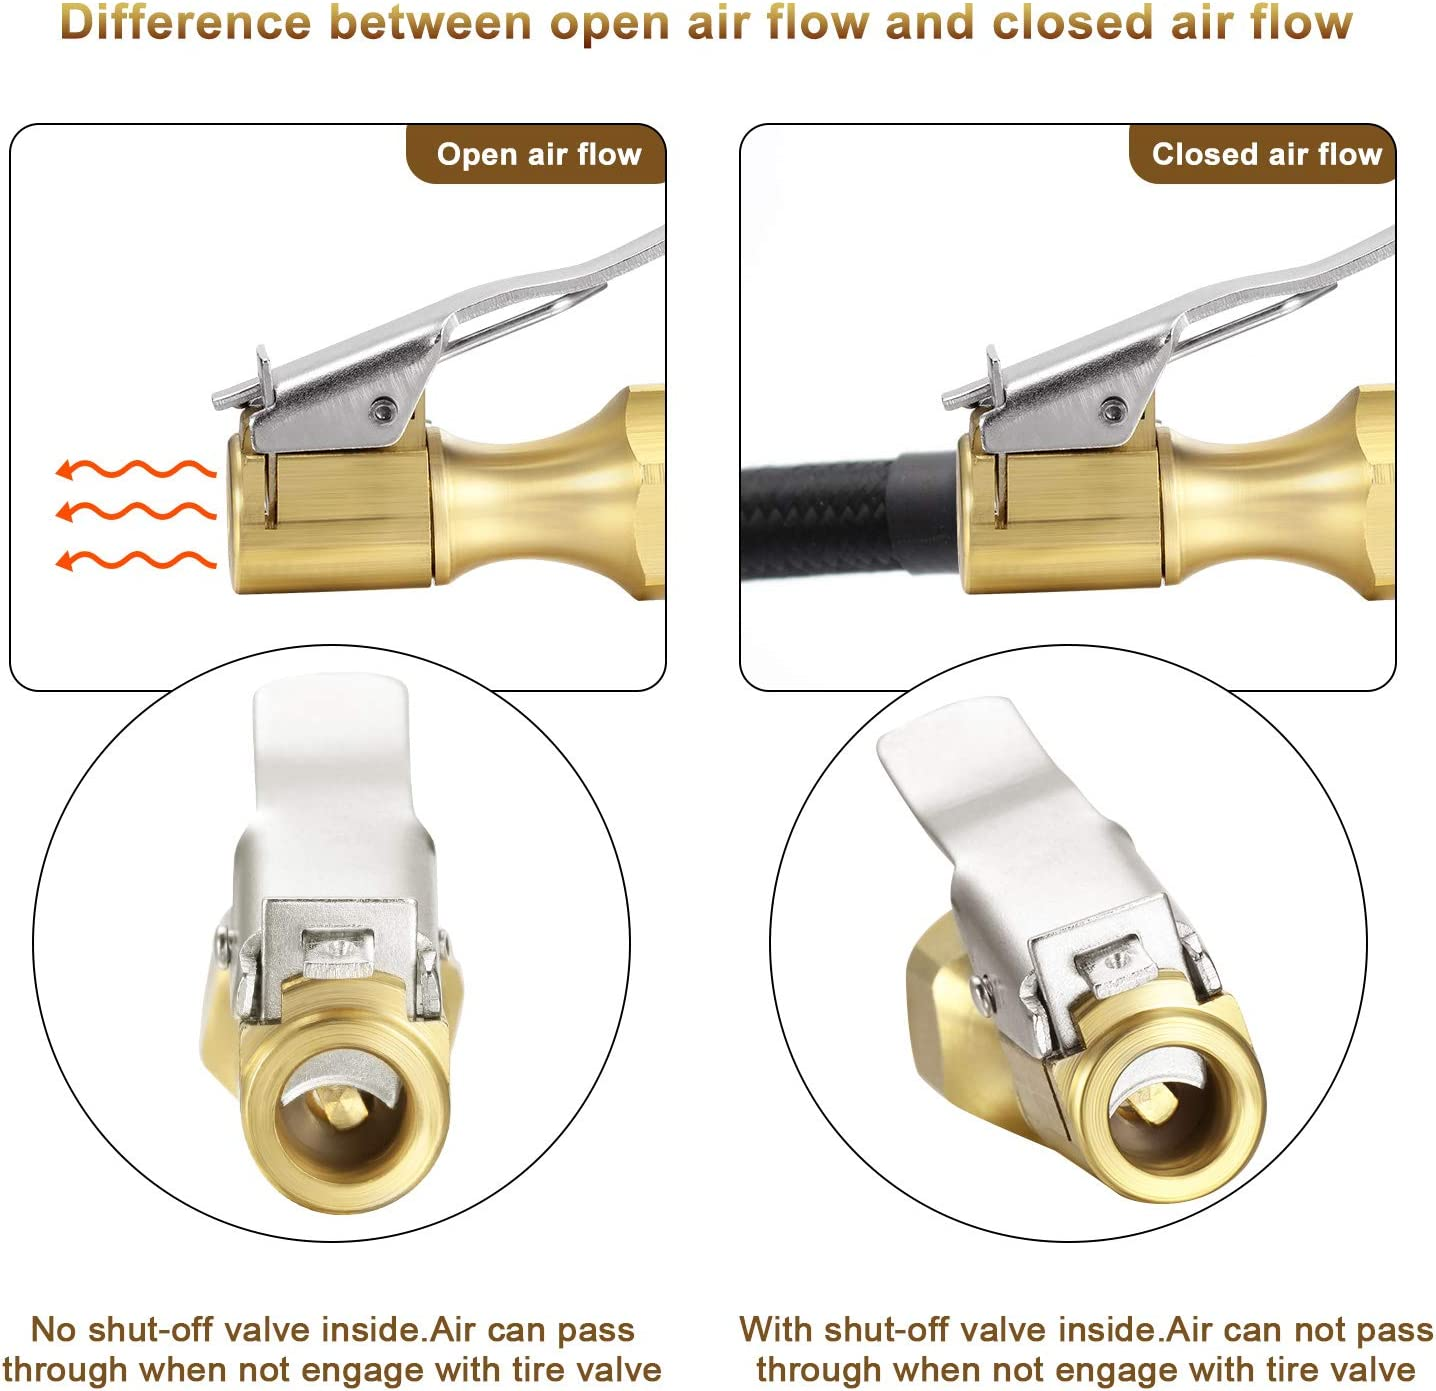 6 Pieces Brass Air Chuck Closed Flow Straight Tire Chuck with Clip for Tire Inflator Gauge Compressor Accessories